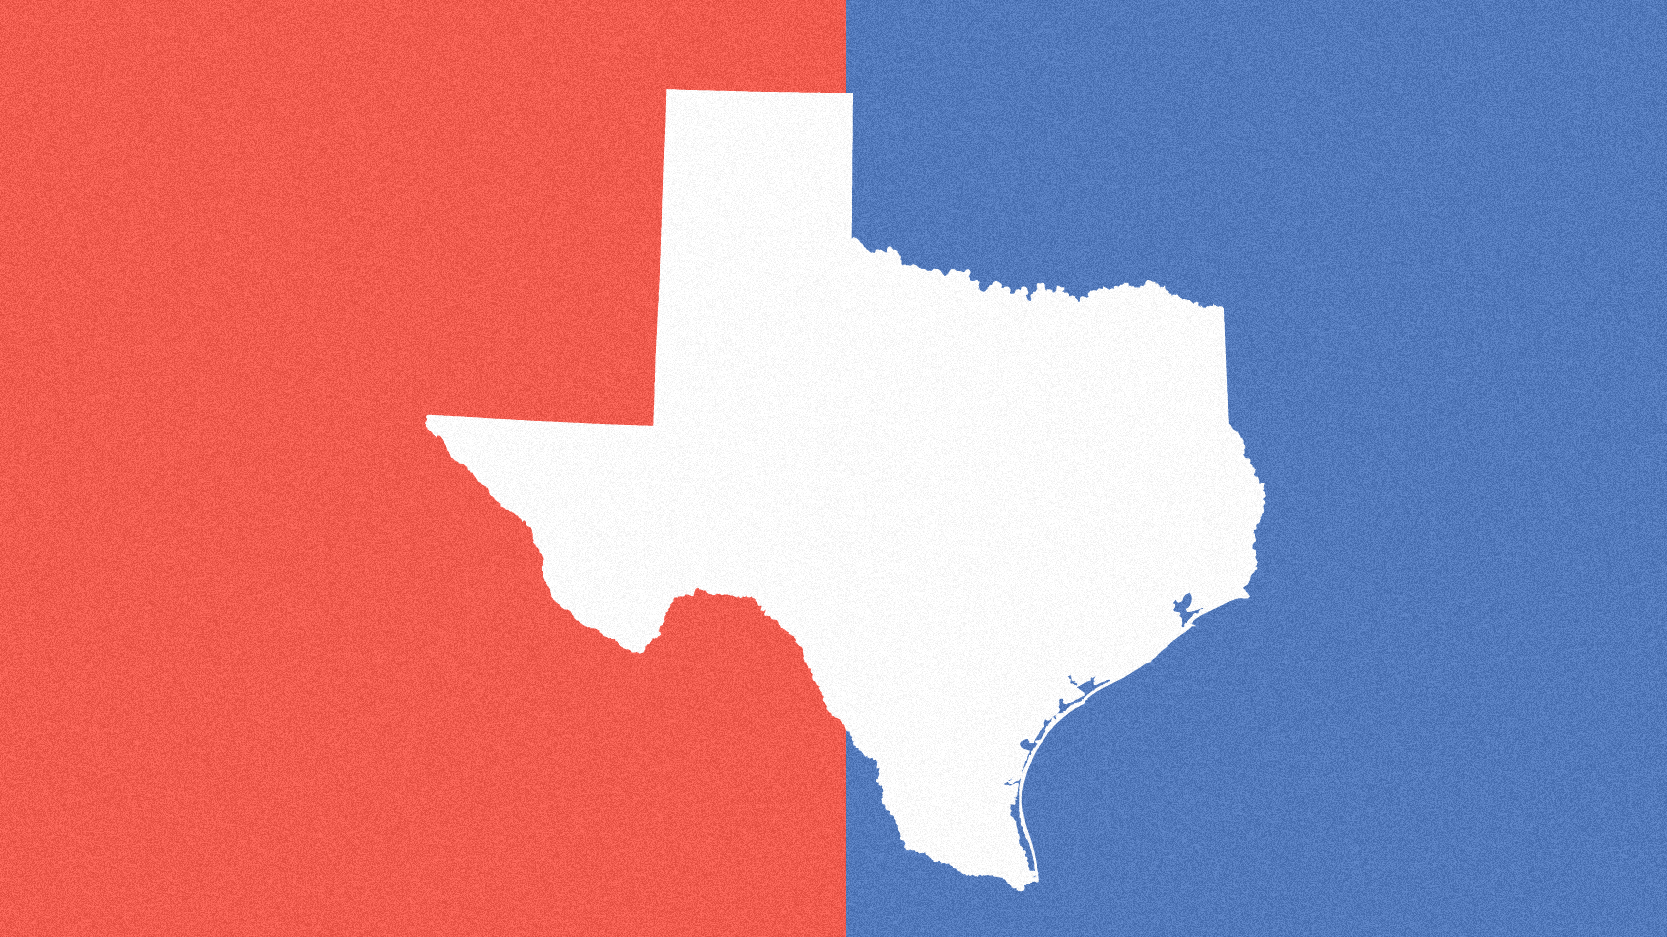 Election Maps Are Telling You Big Lies About Small Things US